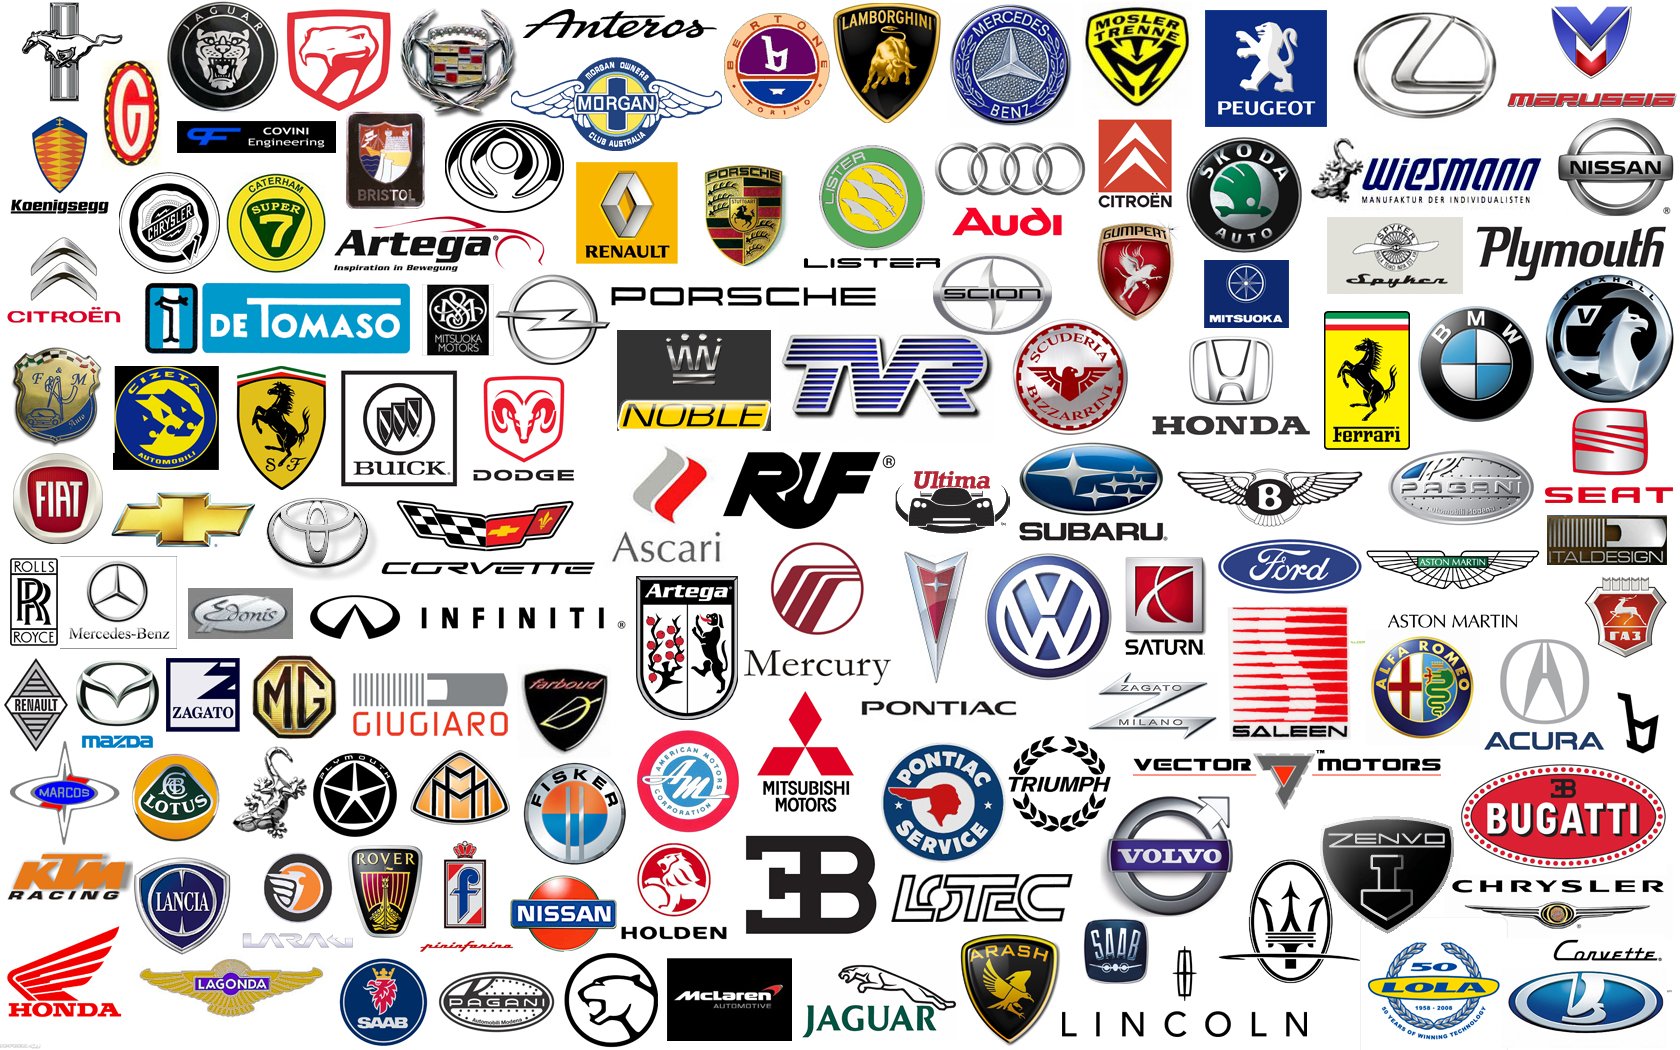 List Of All Car Companies With Their Logos